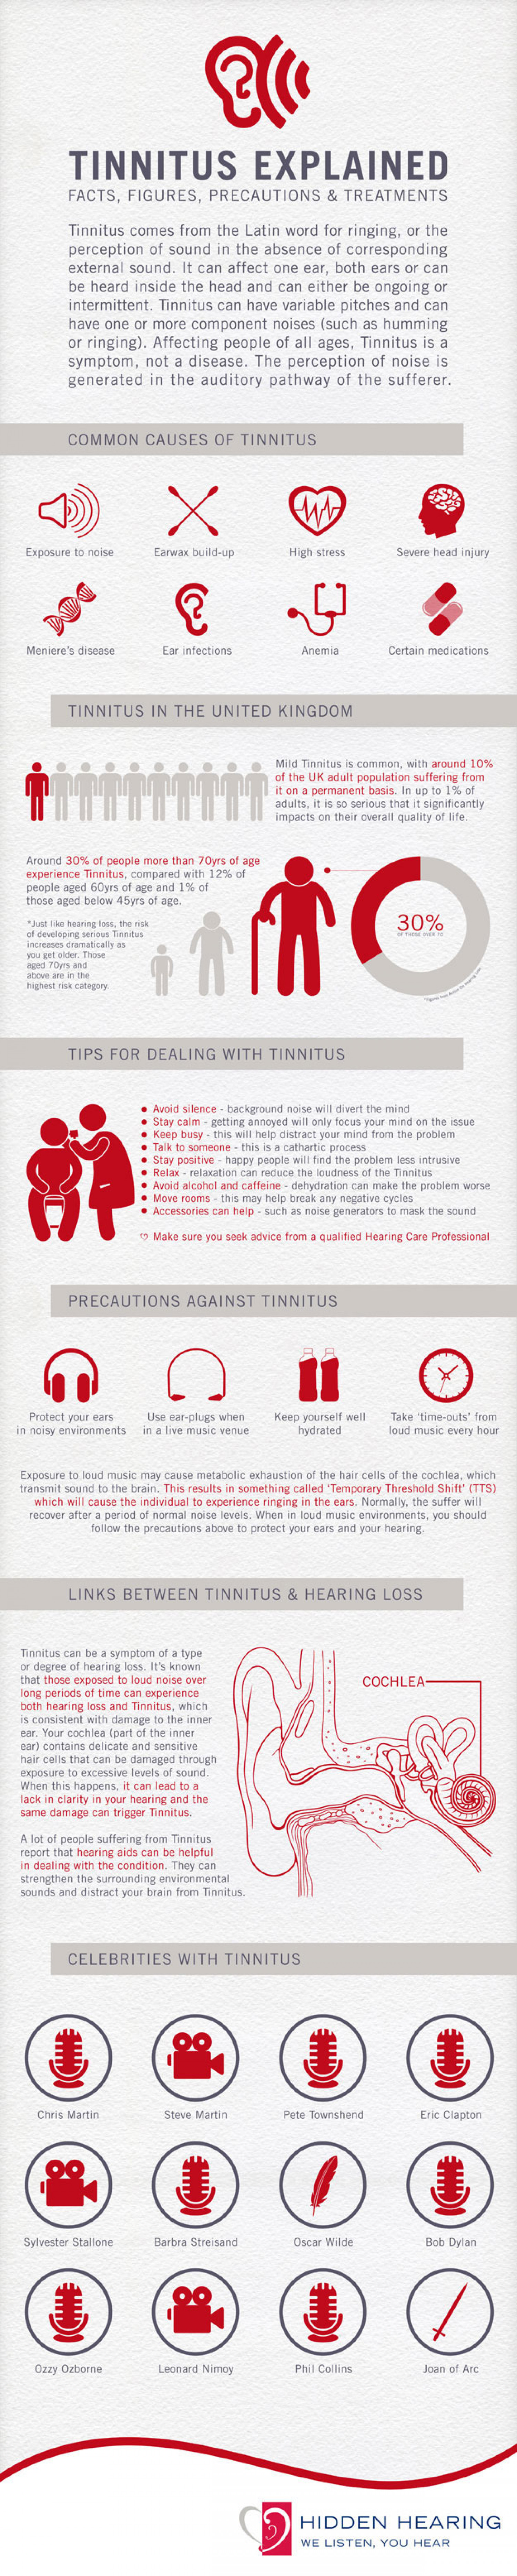 Tinnitus Explained Infographic